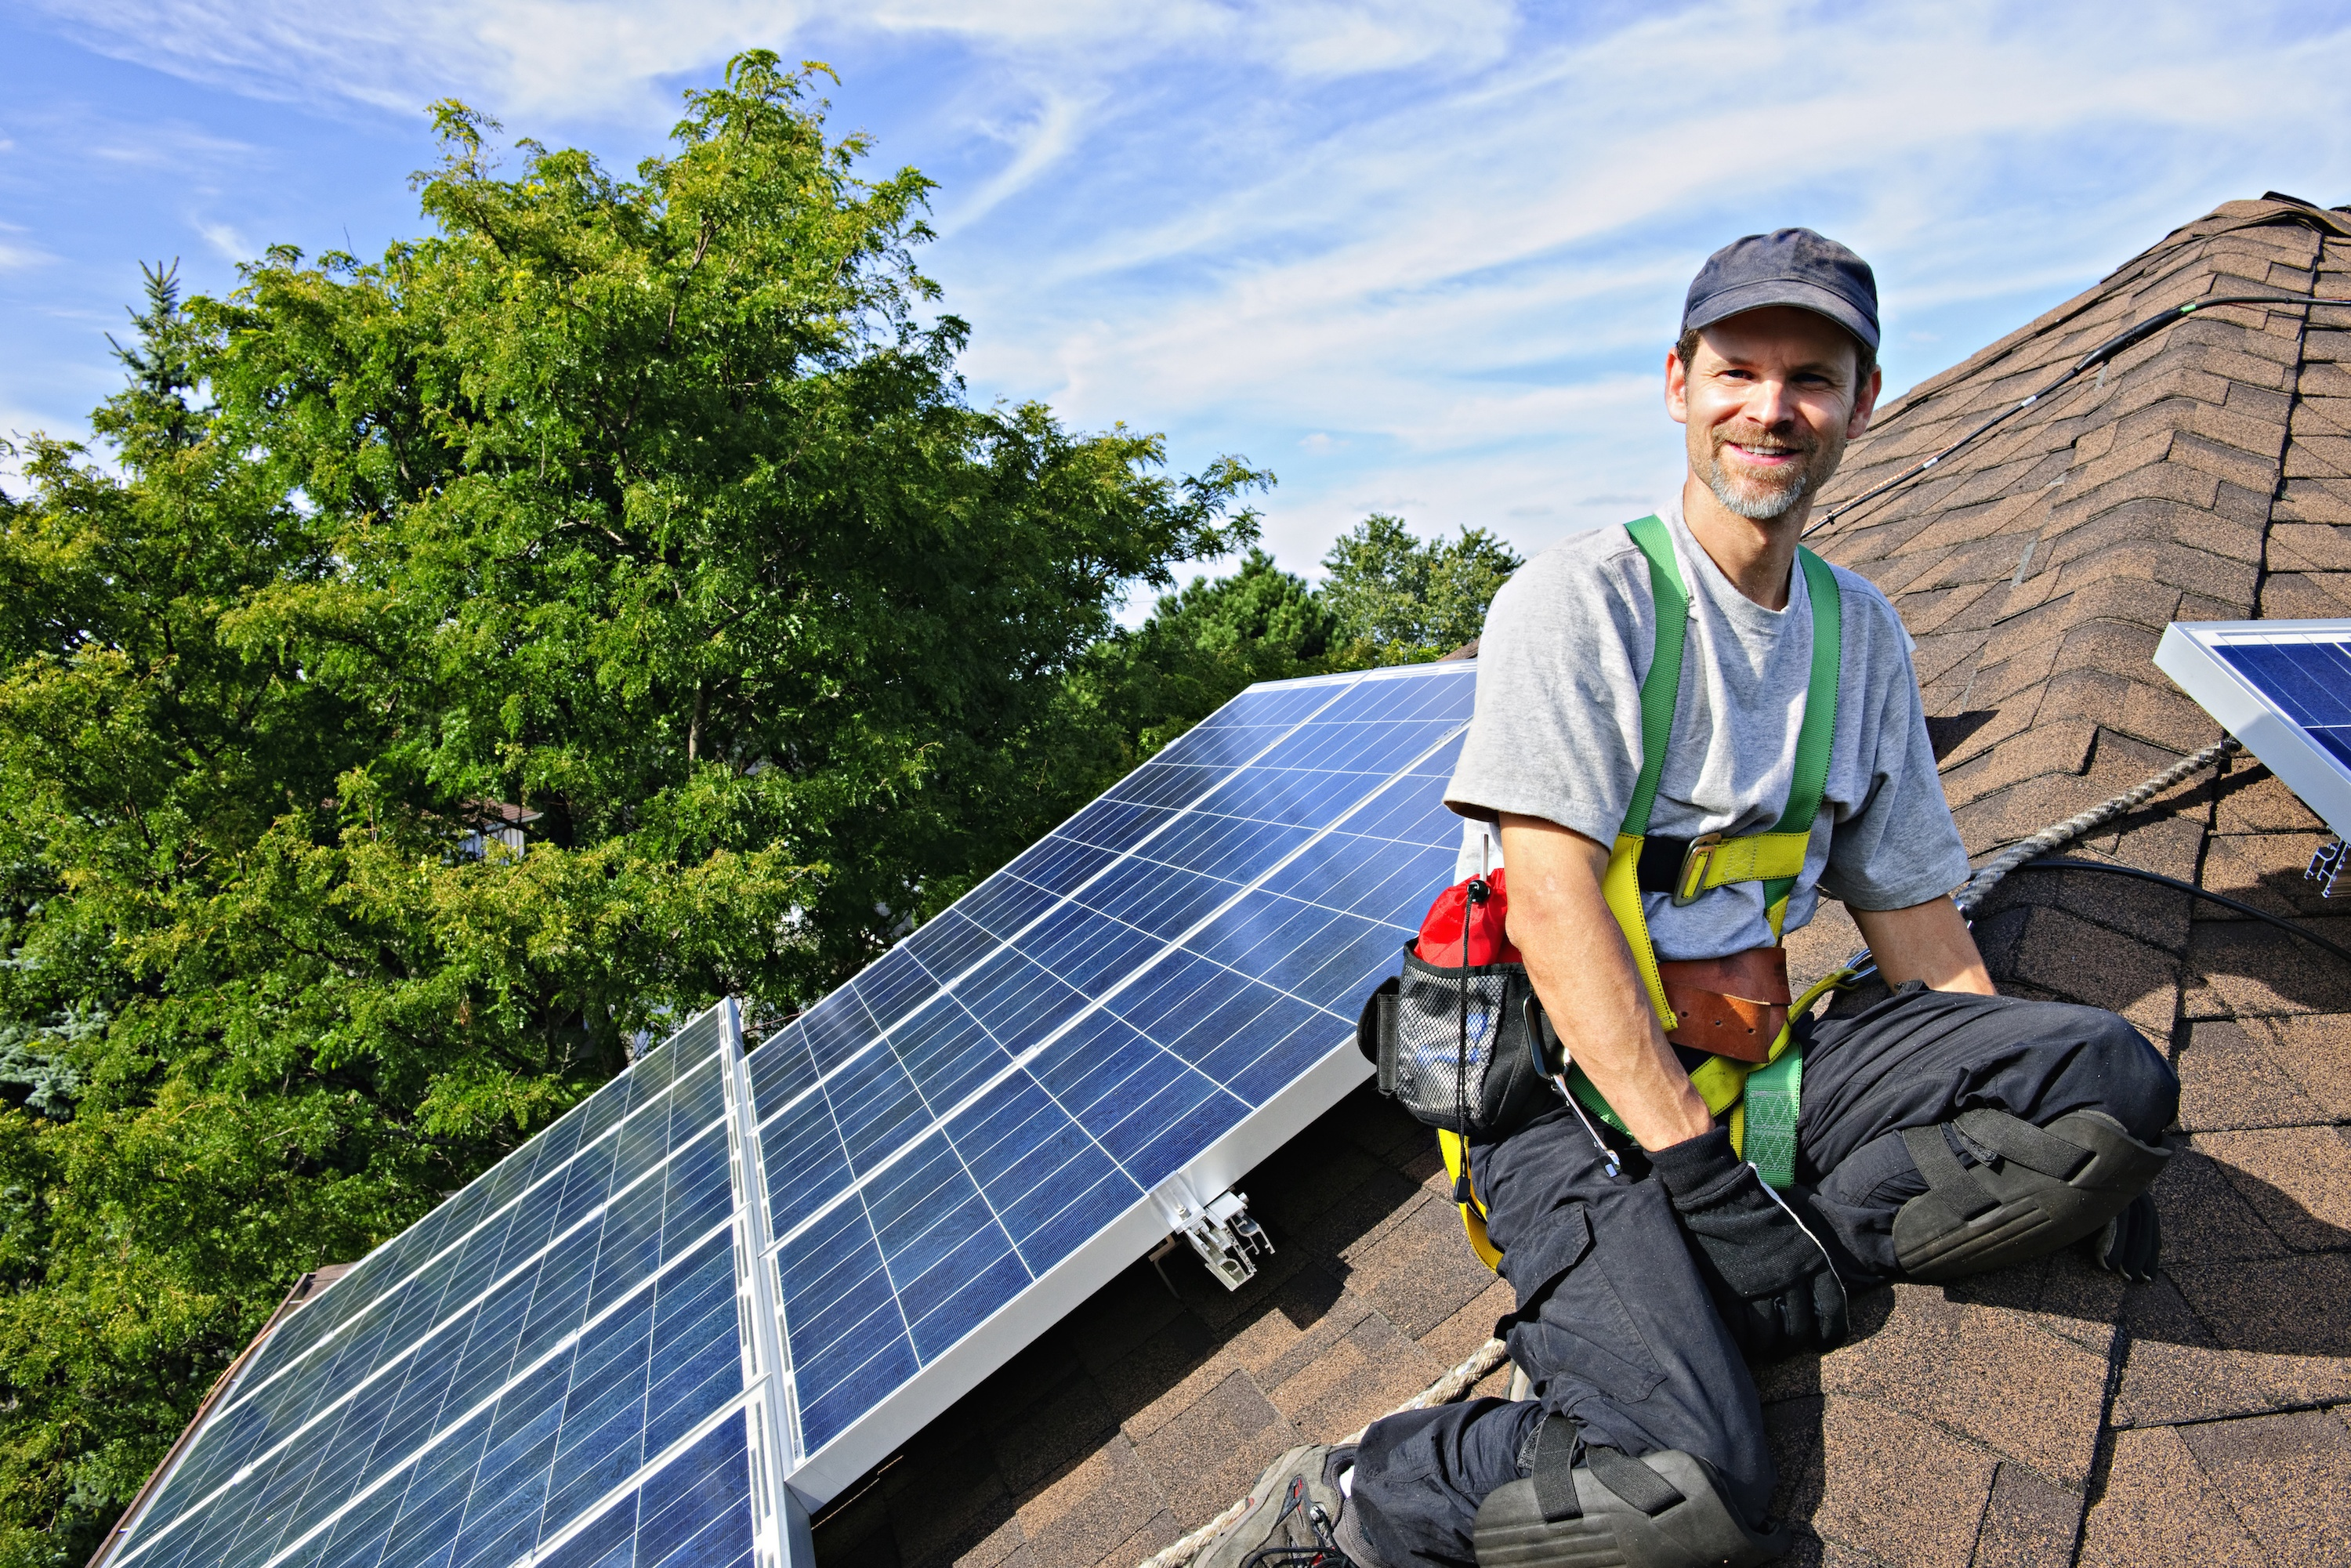 5 tips to fuel solar sales